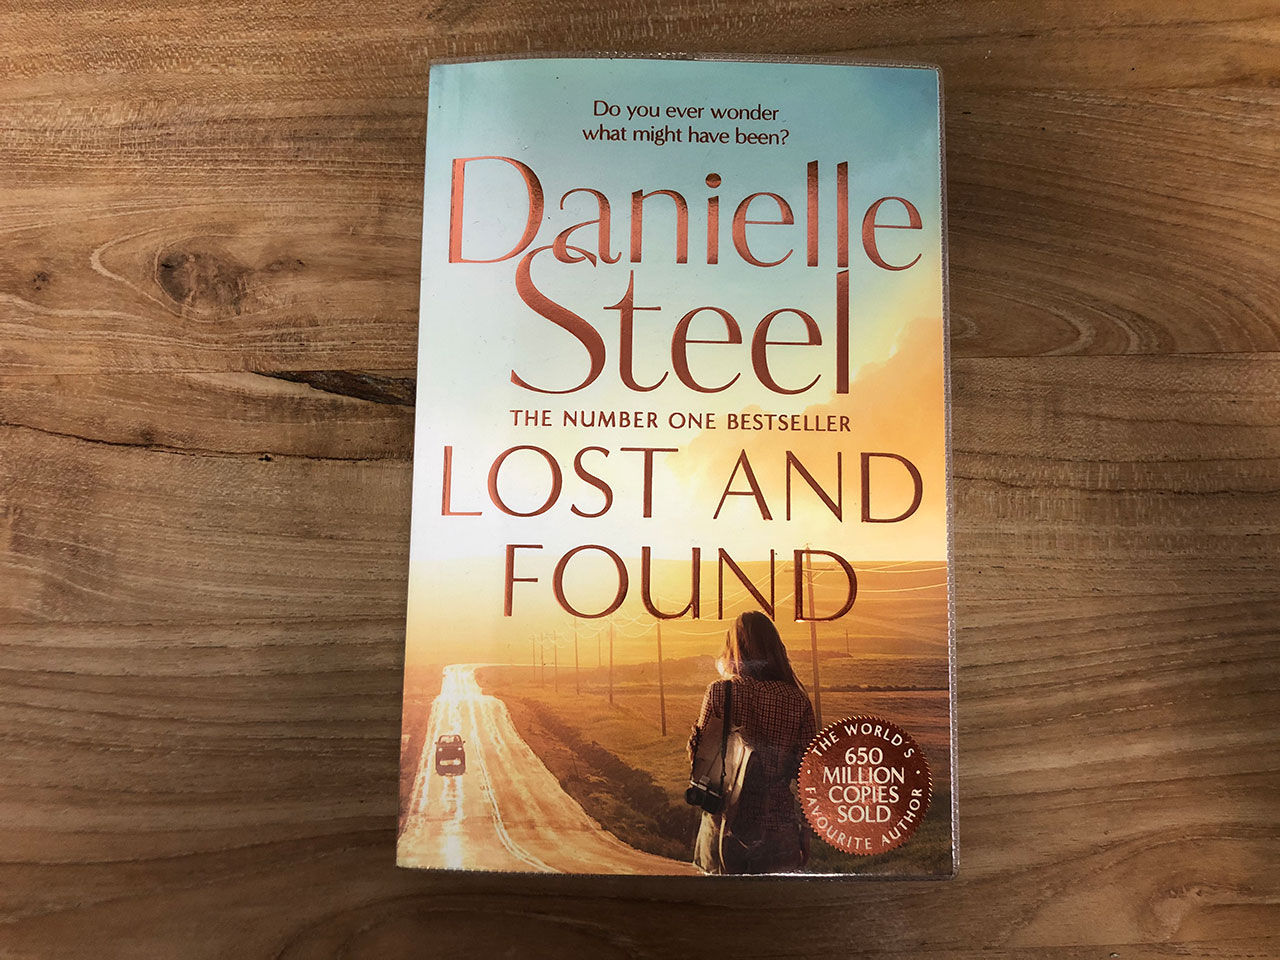 Book cover by Danielle Steel Lost and Found